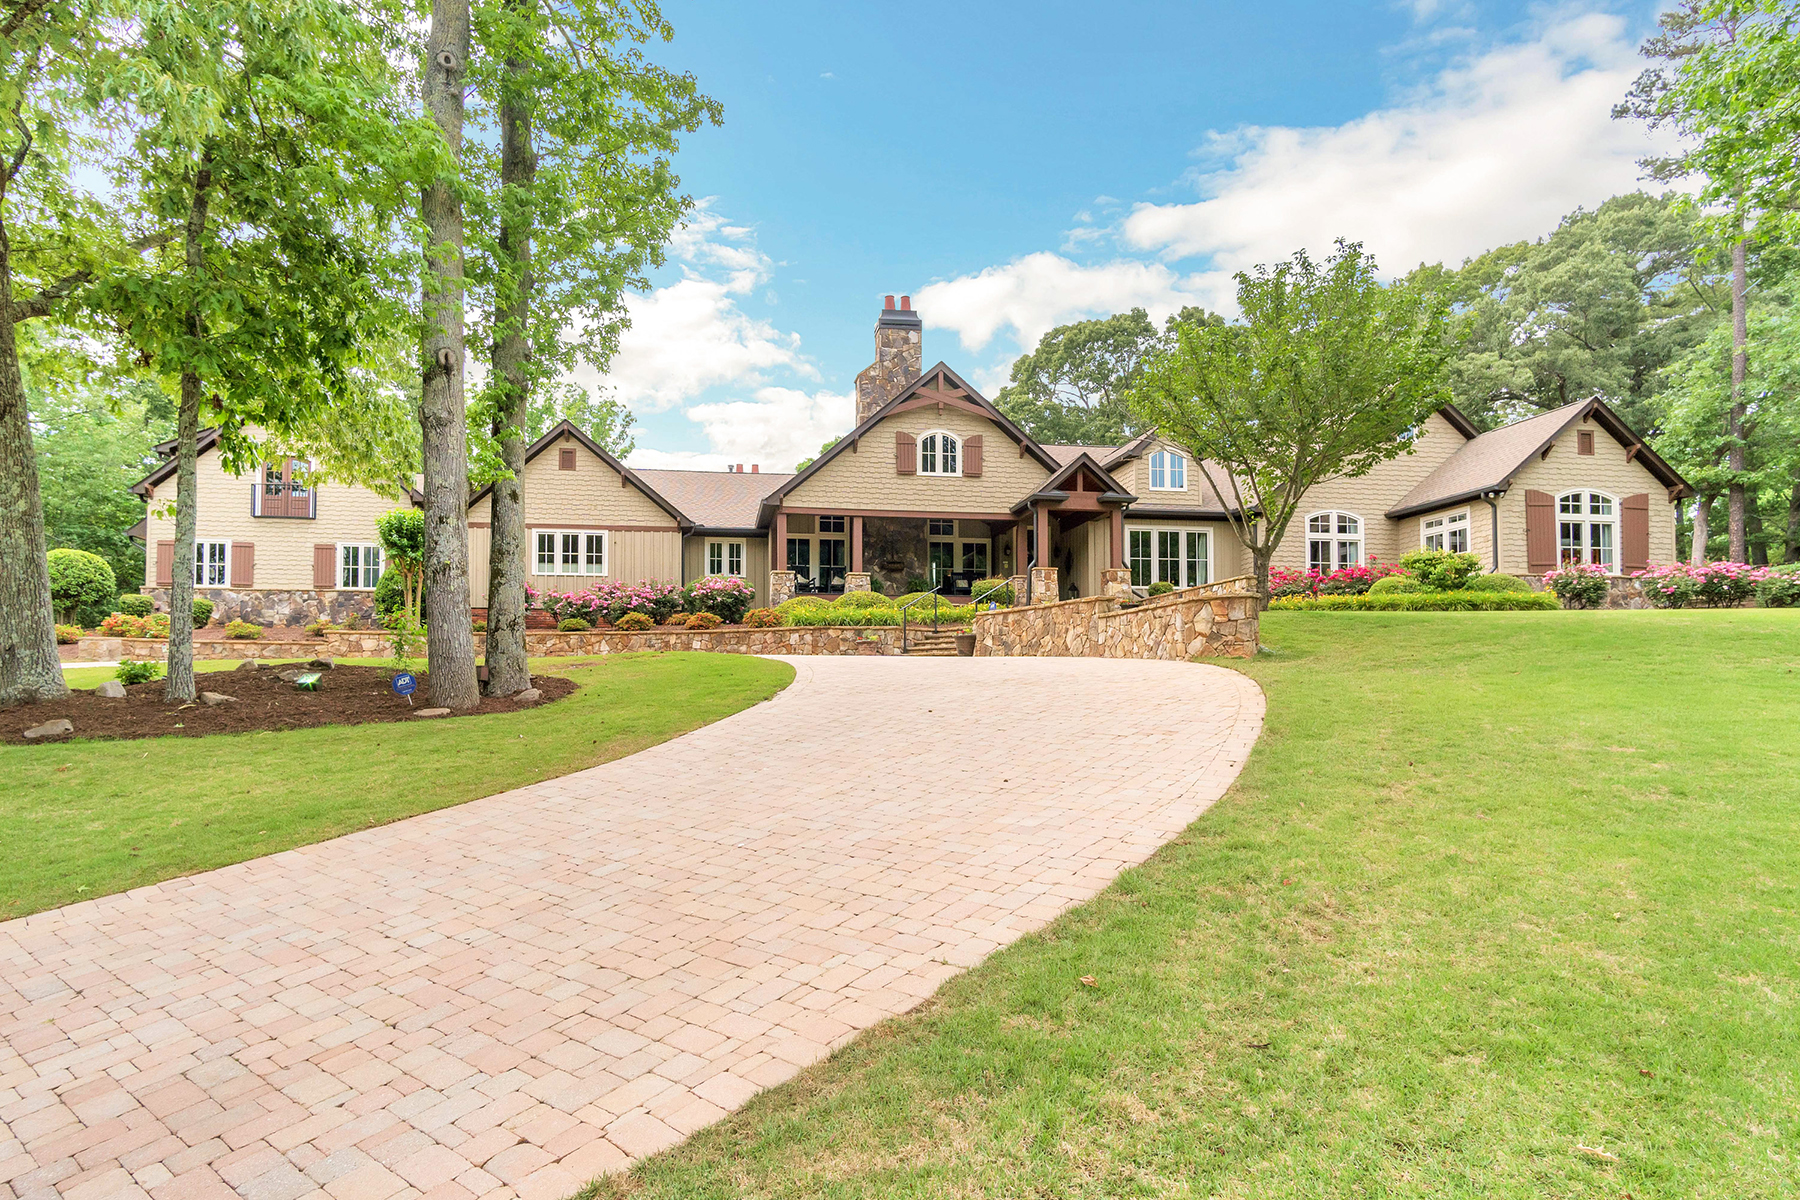 Farm / Ranch / Plantation for Sale at Stunning, Completely Renovated, Private, and Gated 10 Acre Equestrian Estate! 3961 Sloan Mill Road Gainesville, Georgia 30507 United States